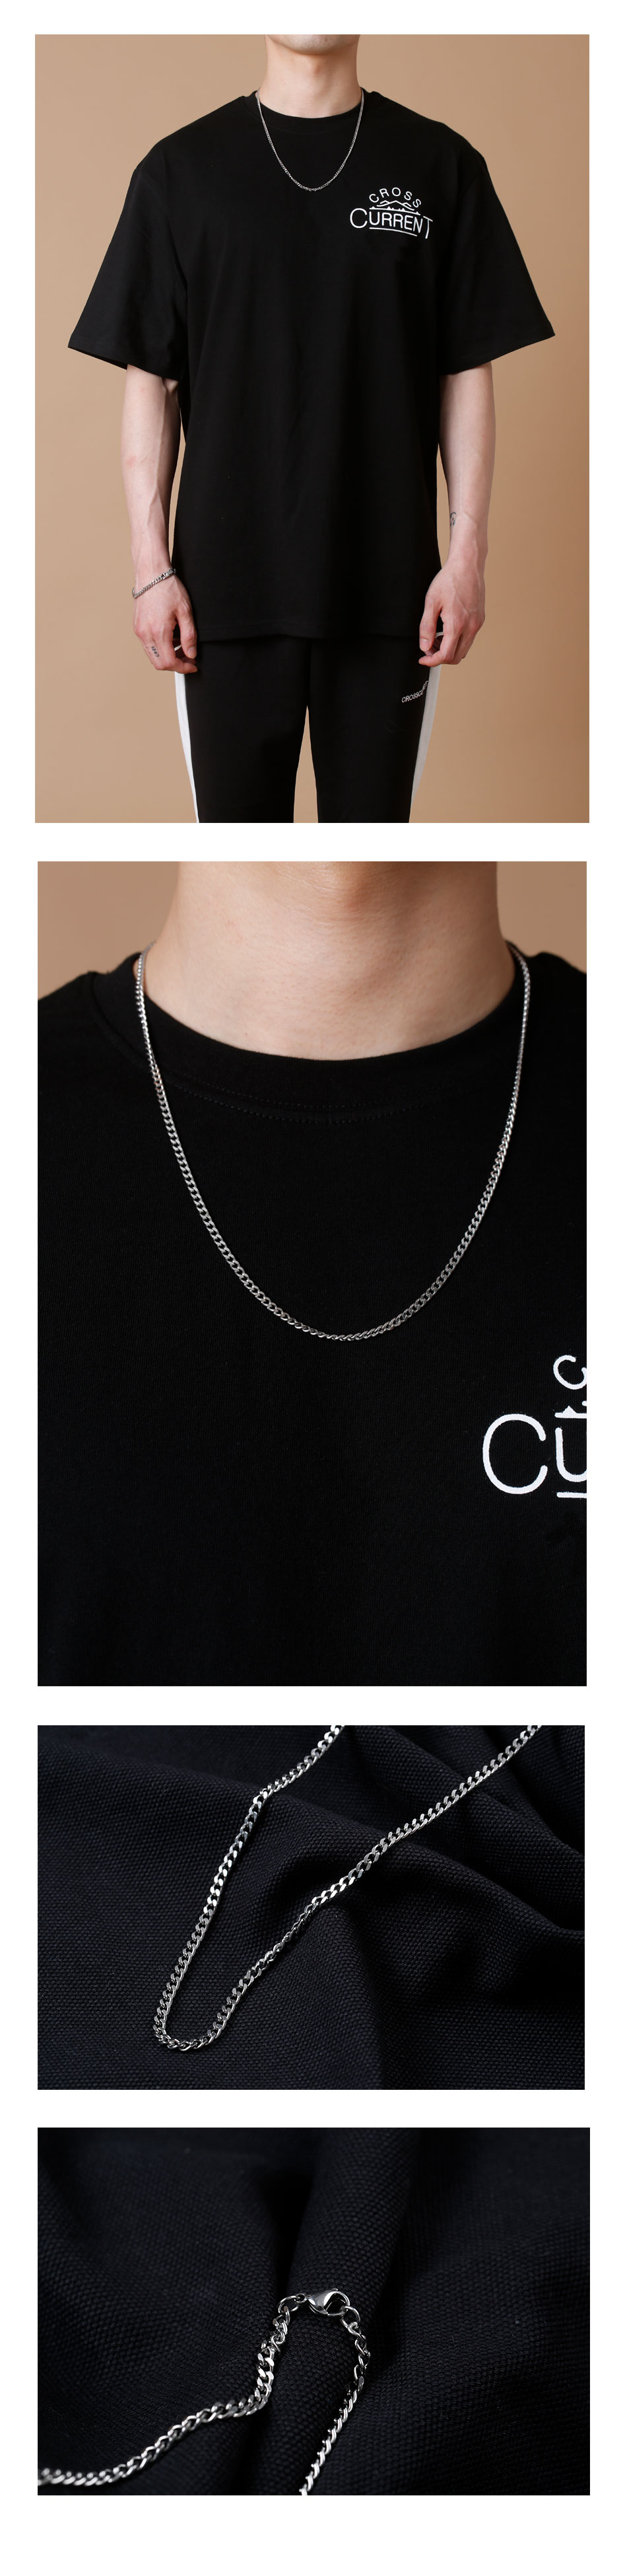 #crct00010-CCT-Chain-Necklace950.jpg